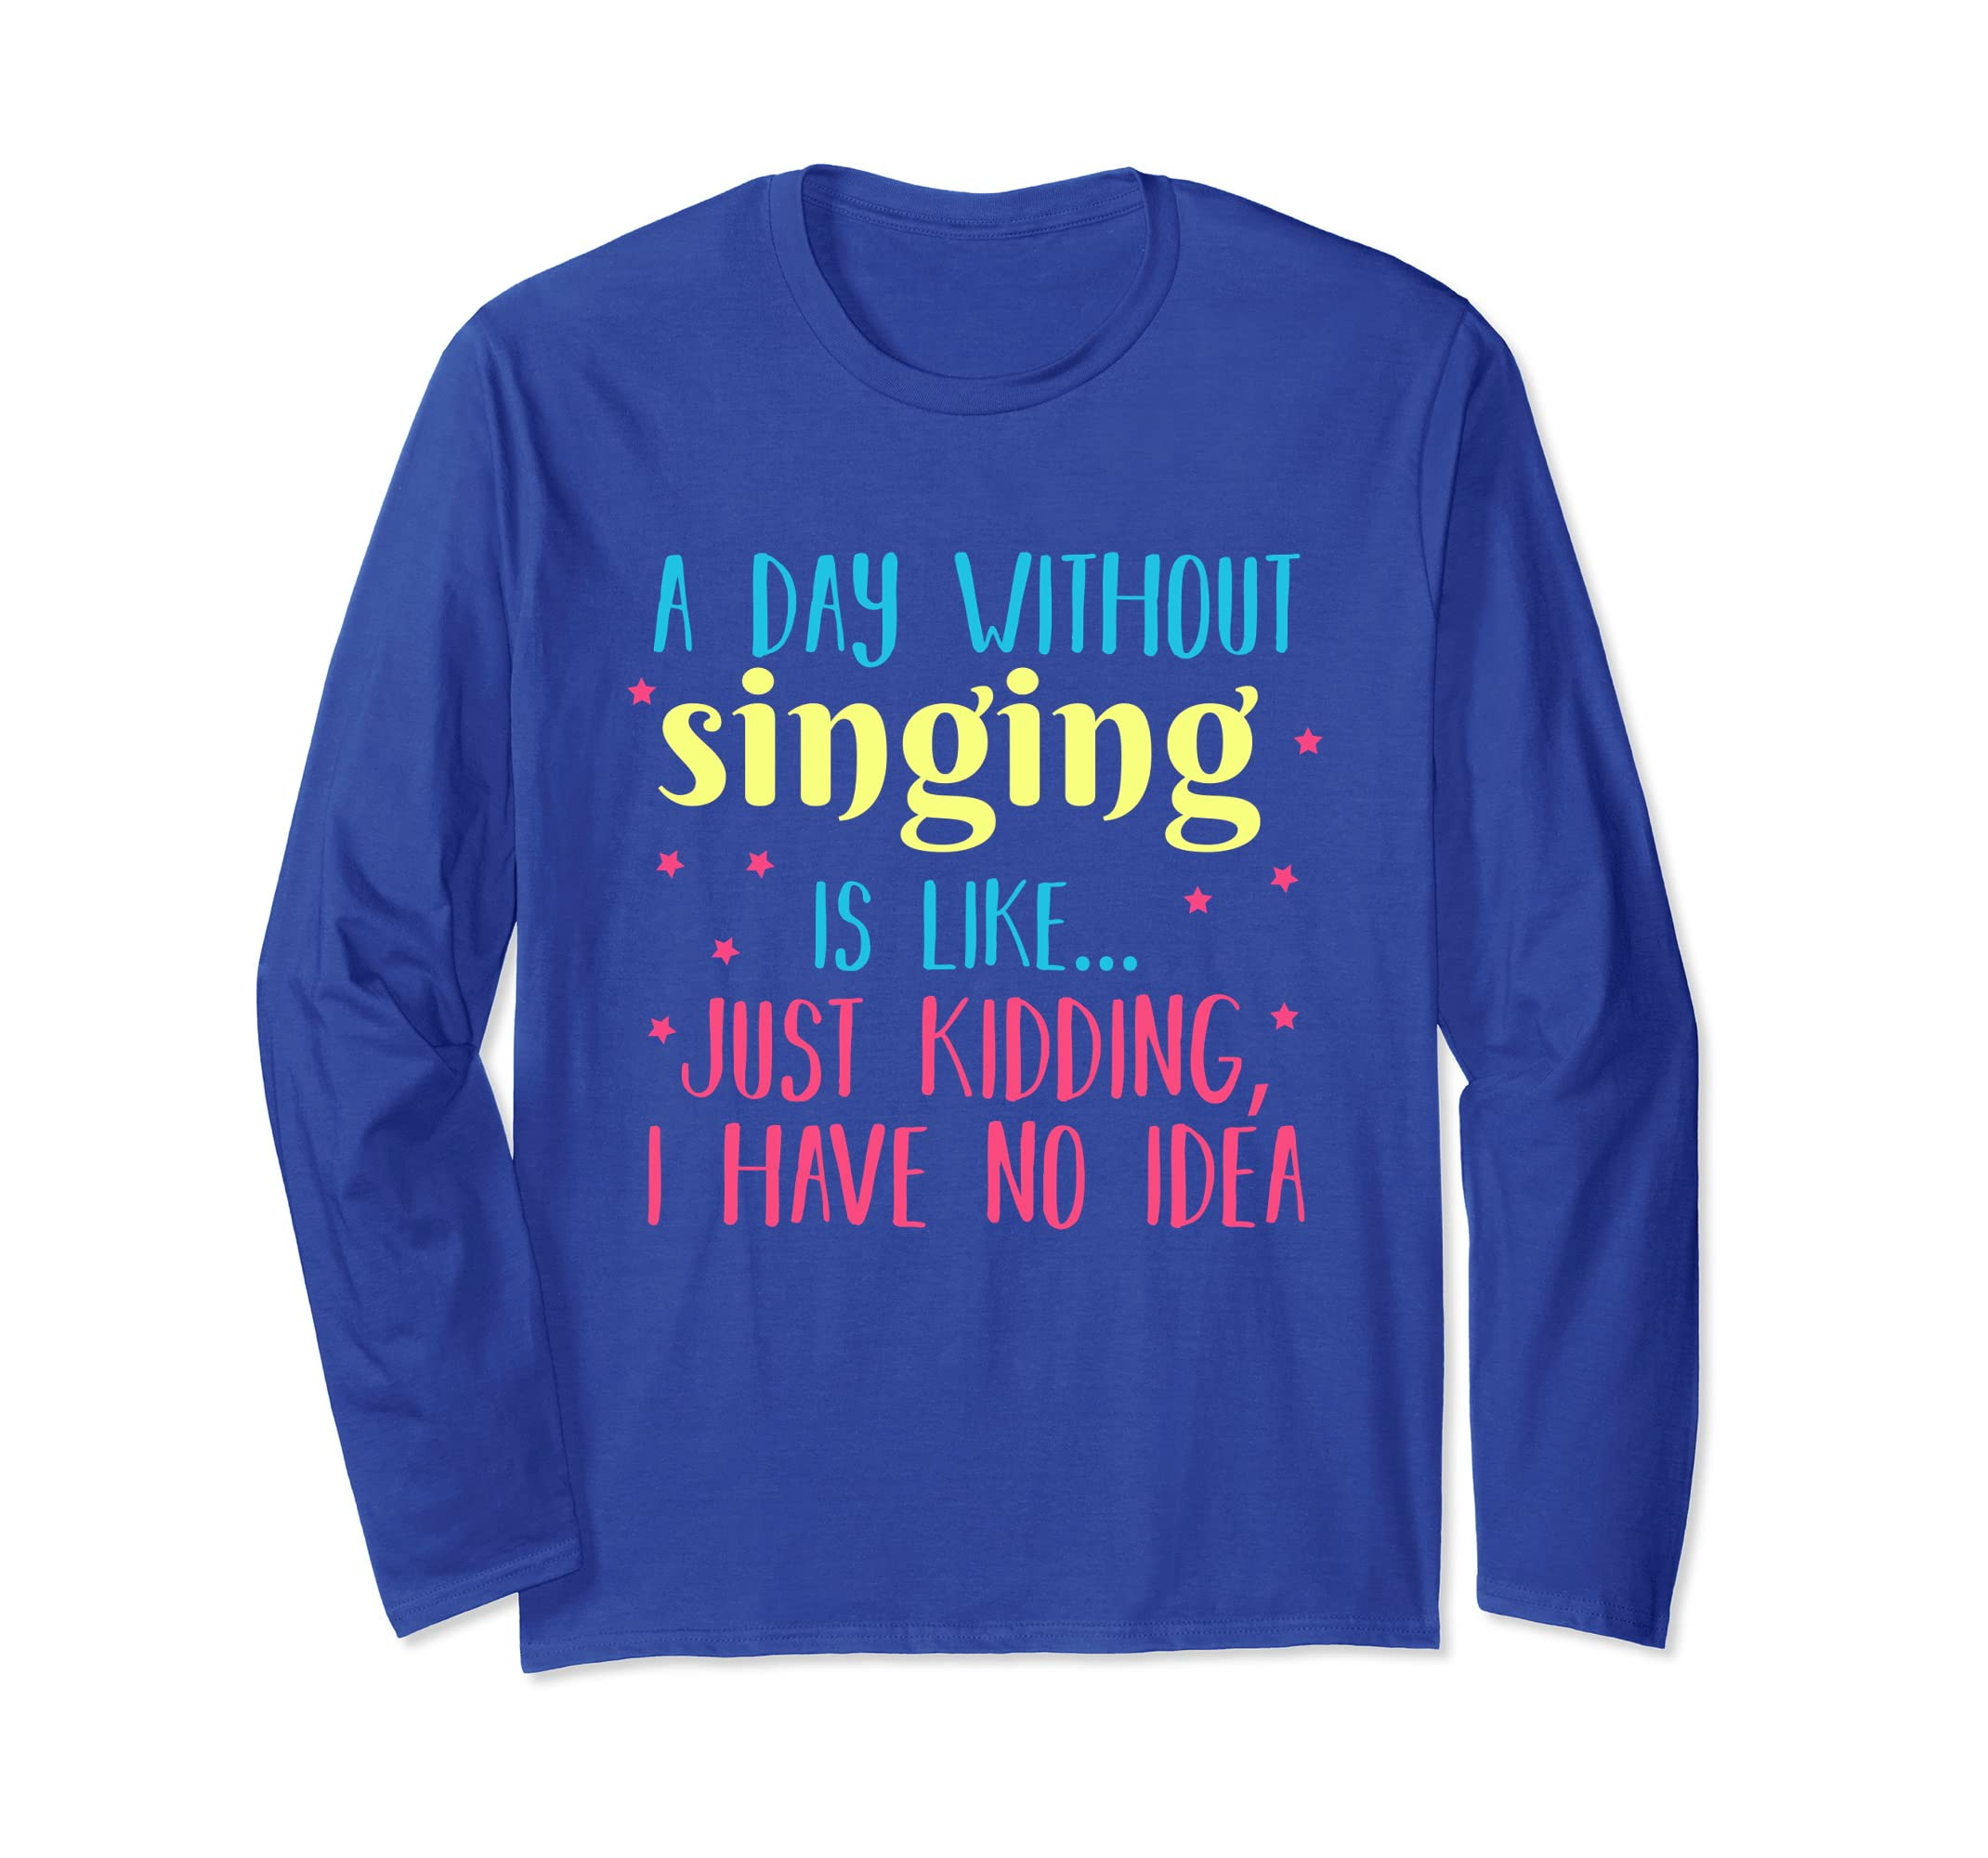 A Day Without Singing is Like, Funny Long Sleeve T Shirt-azvn